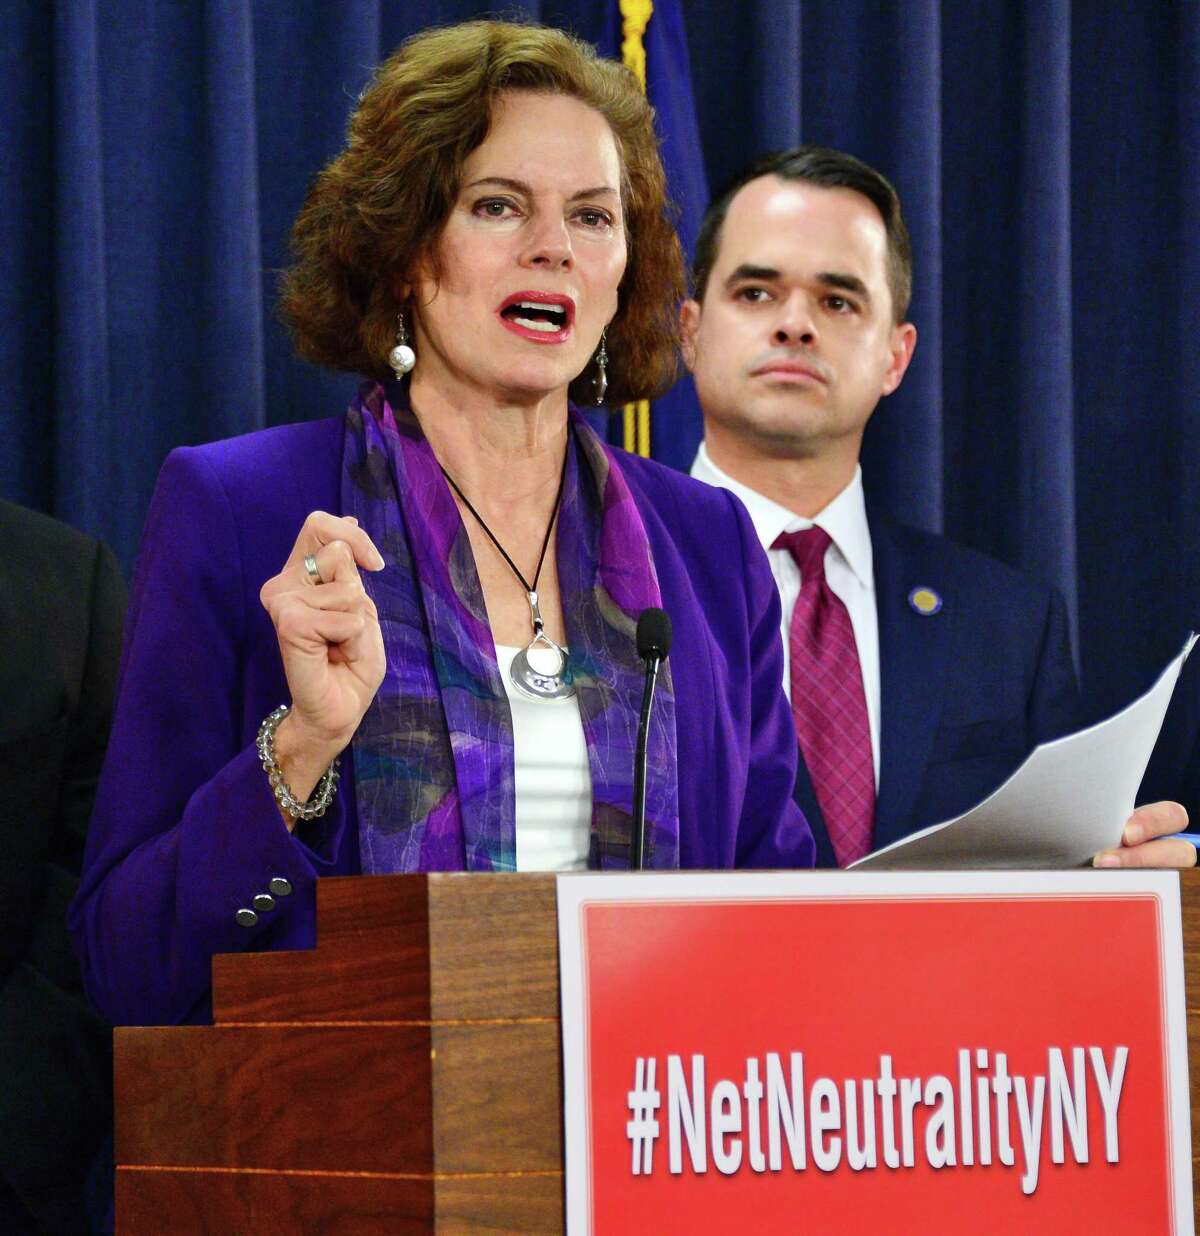 Co-sponsors of legislation to enforce net neutrality in New York State, Assemblymember Patricia Fahy, left, and Senator David Carlucci speak during a news conference Tuesday Jan. 23, 2018 in Albany, NY. (John Carl D'Annibale/Times Union)